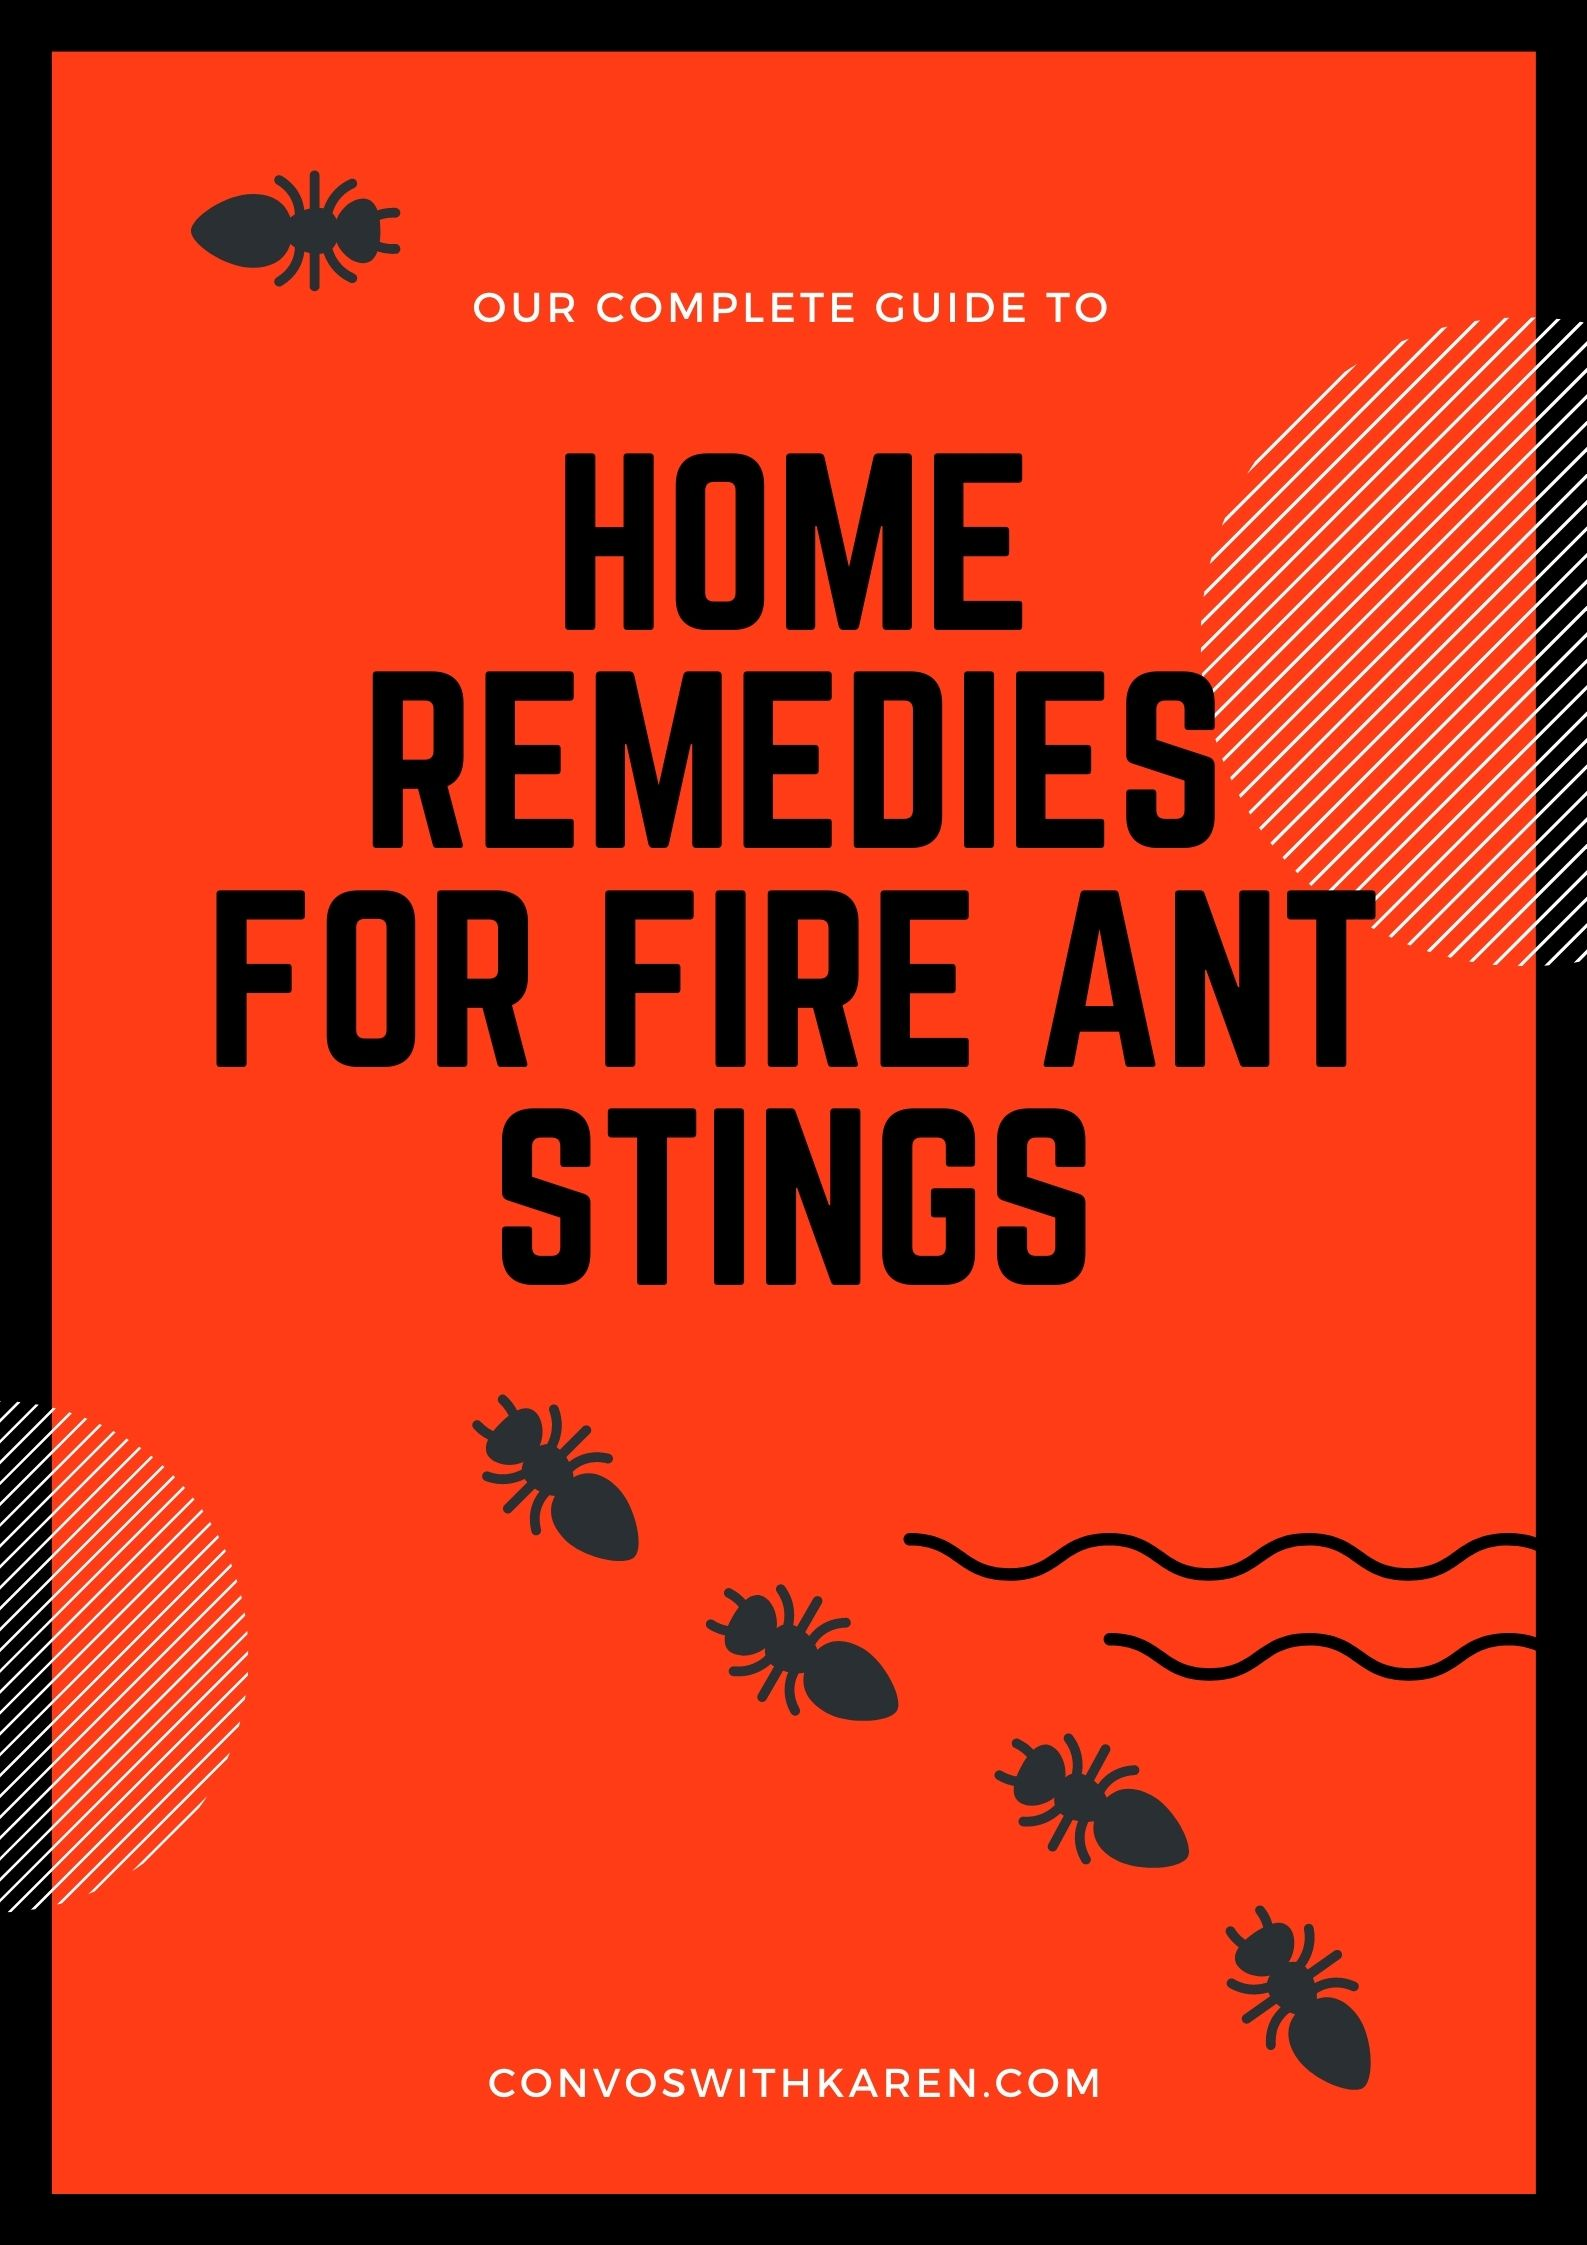 Ever had a fire ant bite? They're horrible! They itch. They sting. They hurt... BUT, treating them is easy with items you have around the house! Find out what home remedies work best -- and what to avoid for fire ant stings. (But, if you are having trouble breathing, call 911.)